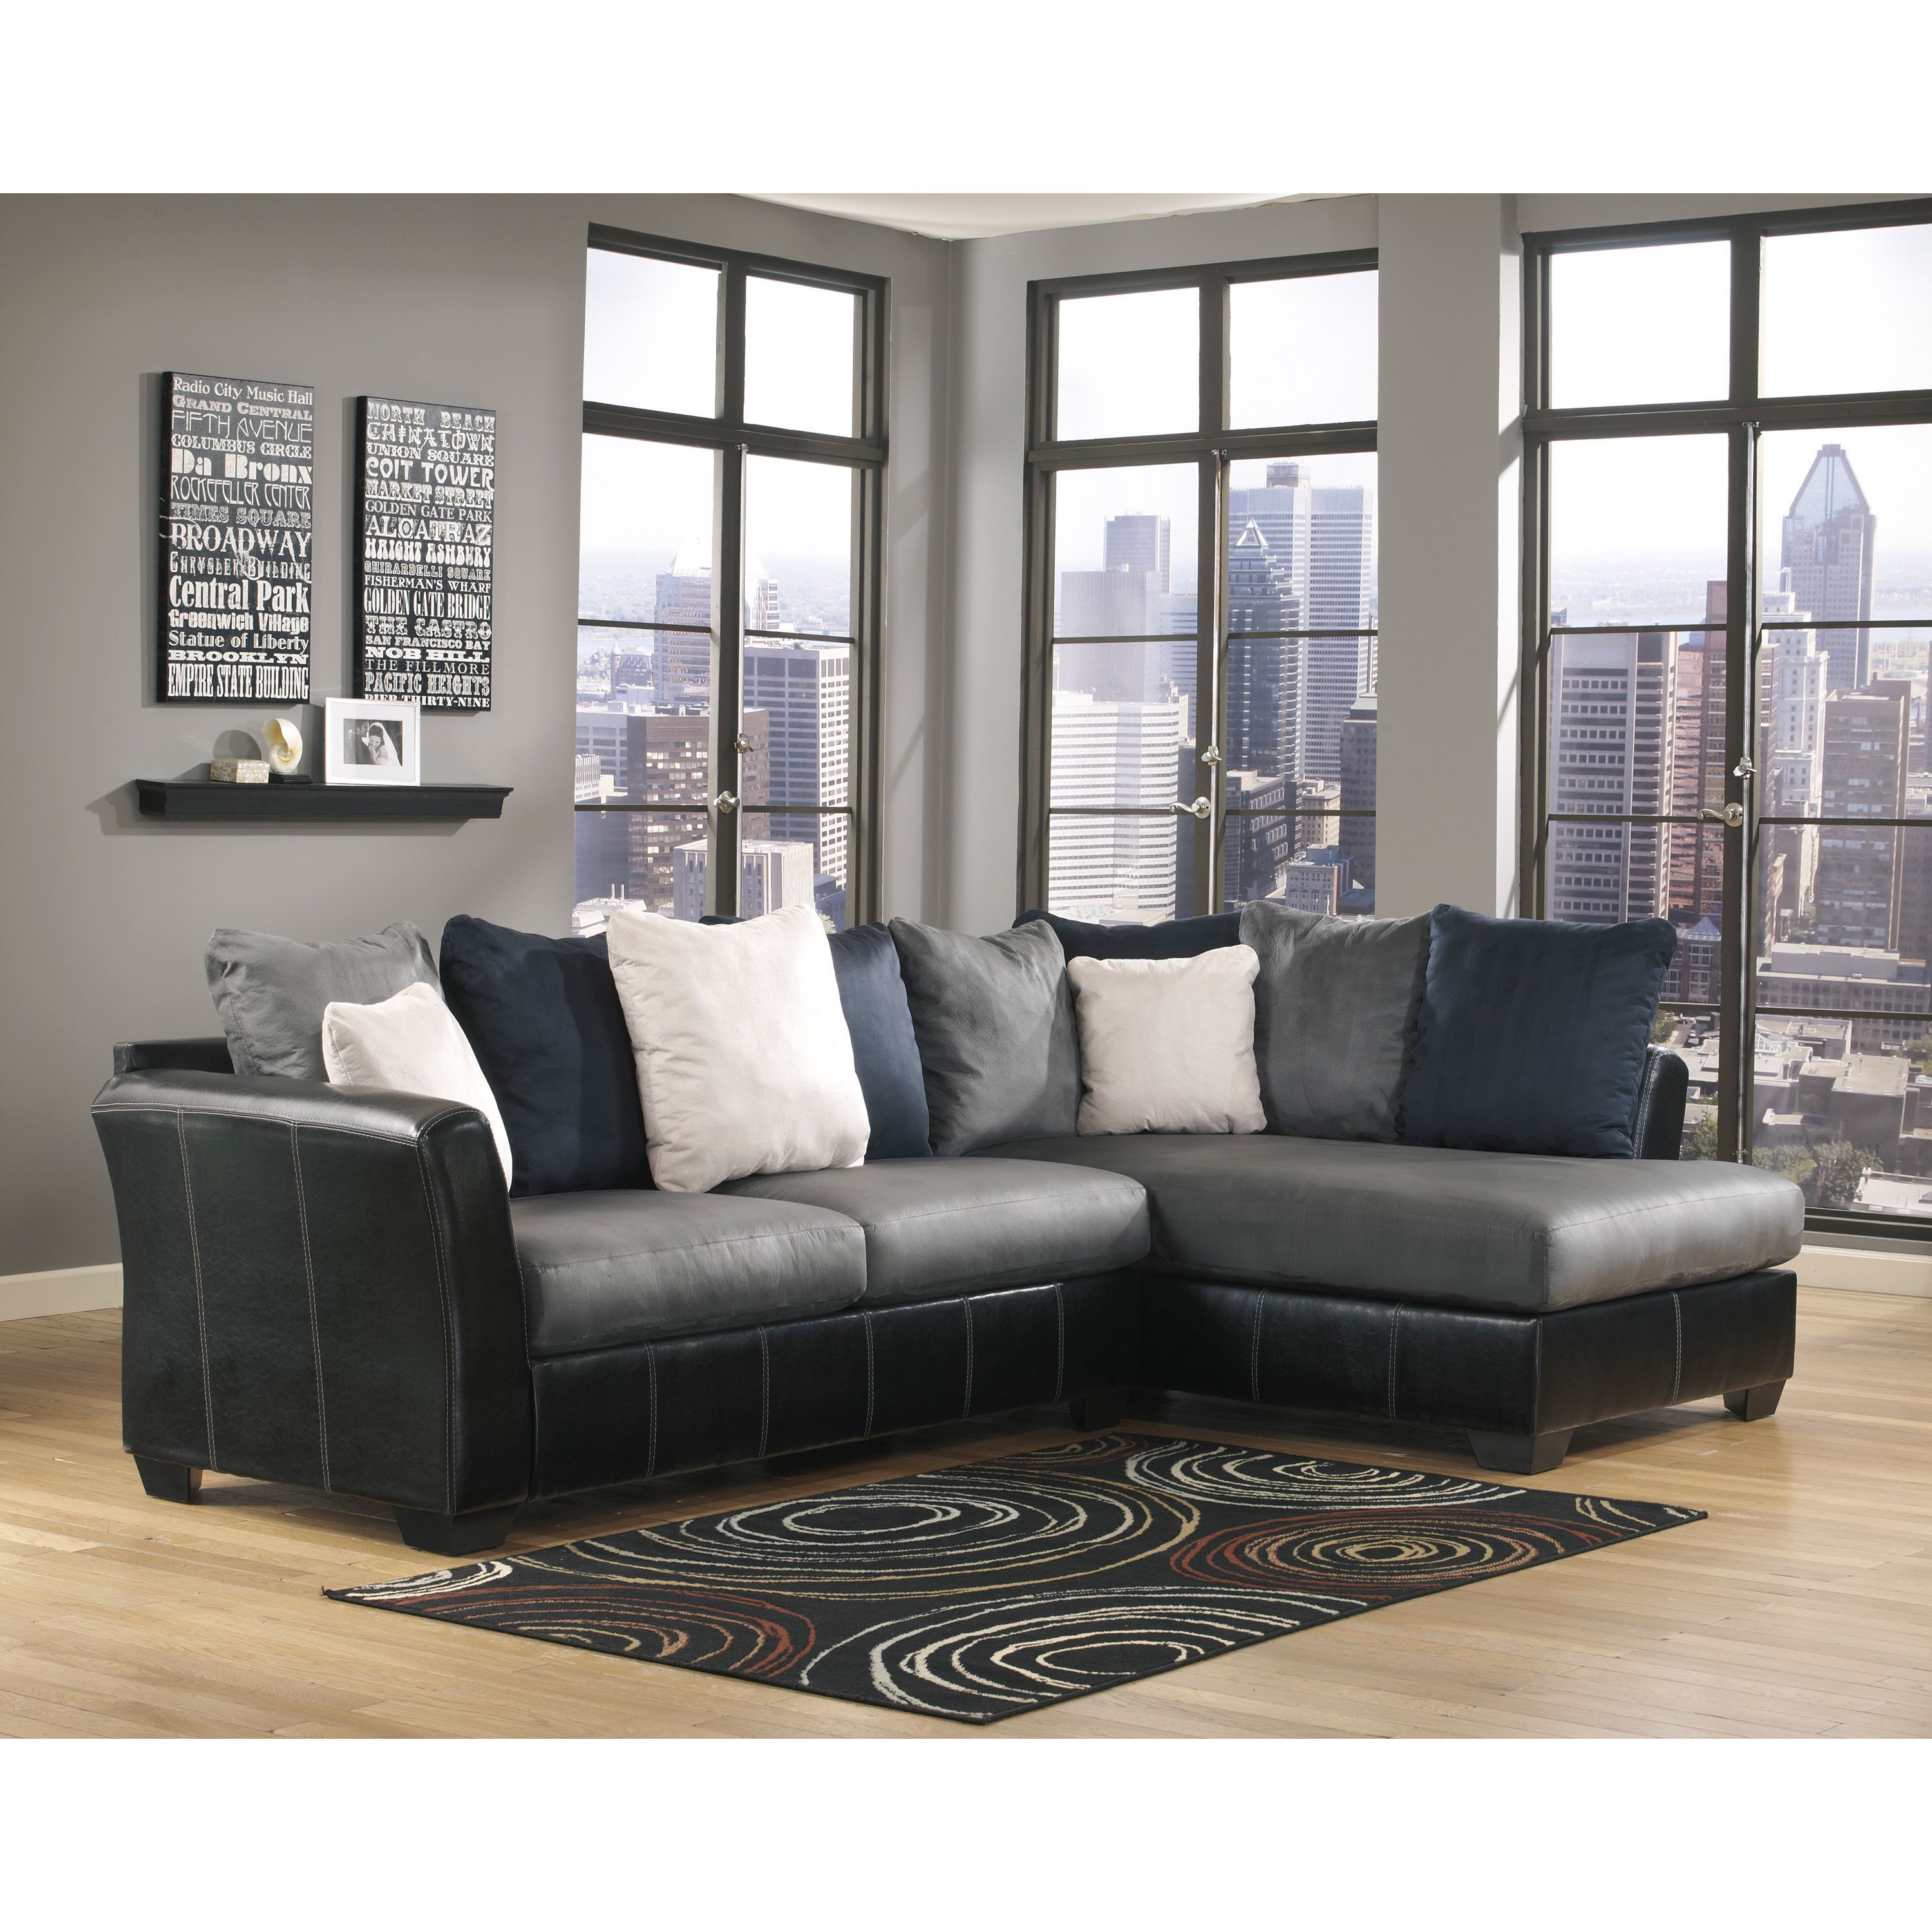 Modern Design Meets Relaxing Comfort With The Masoli Sectional From